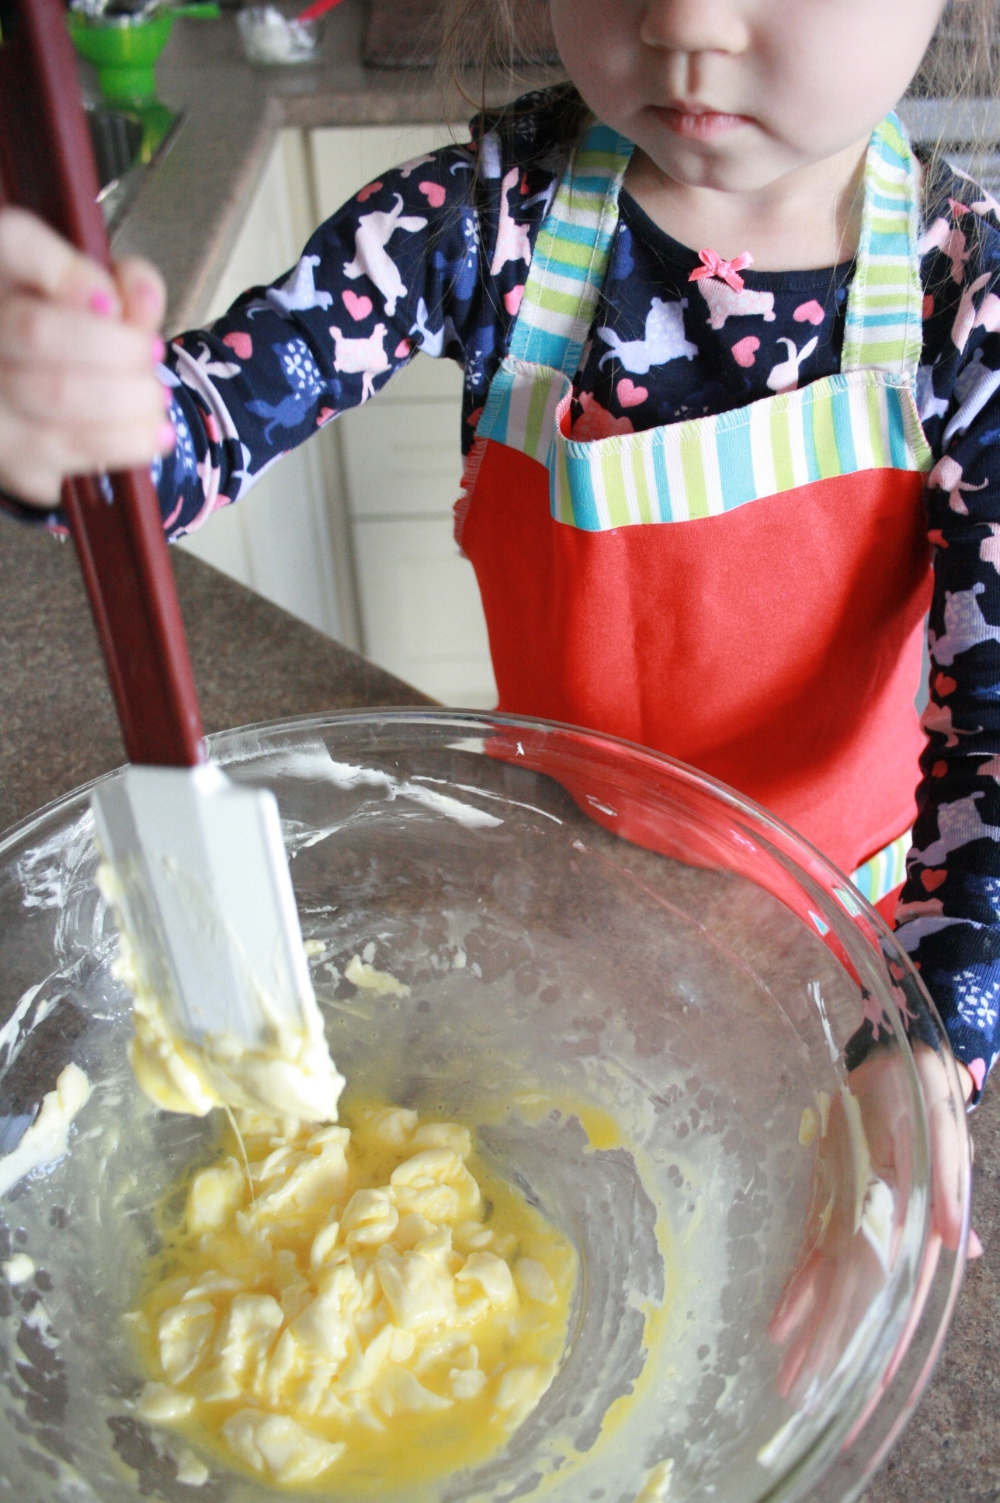 Cooking with kids is easy with gourmet baking mixes from Bake!